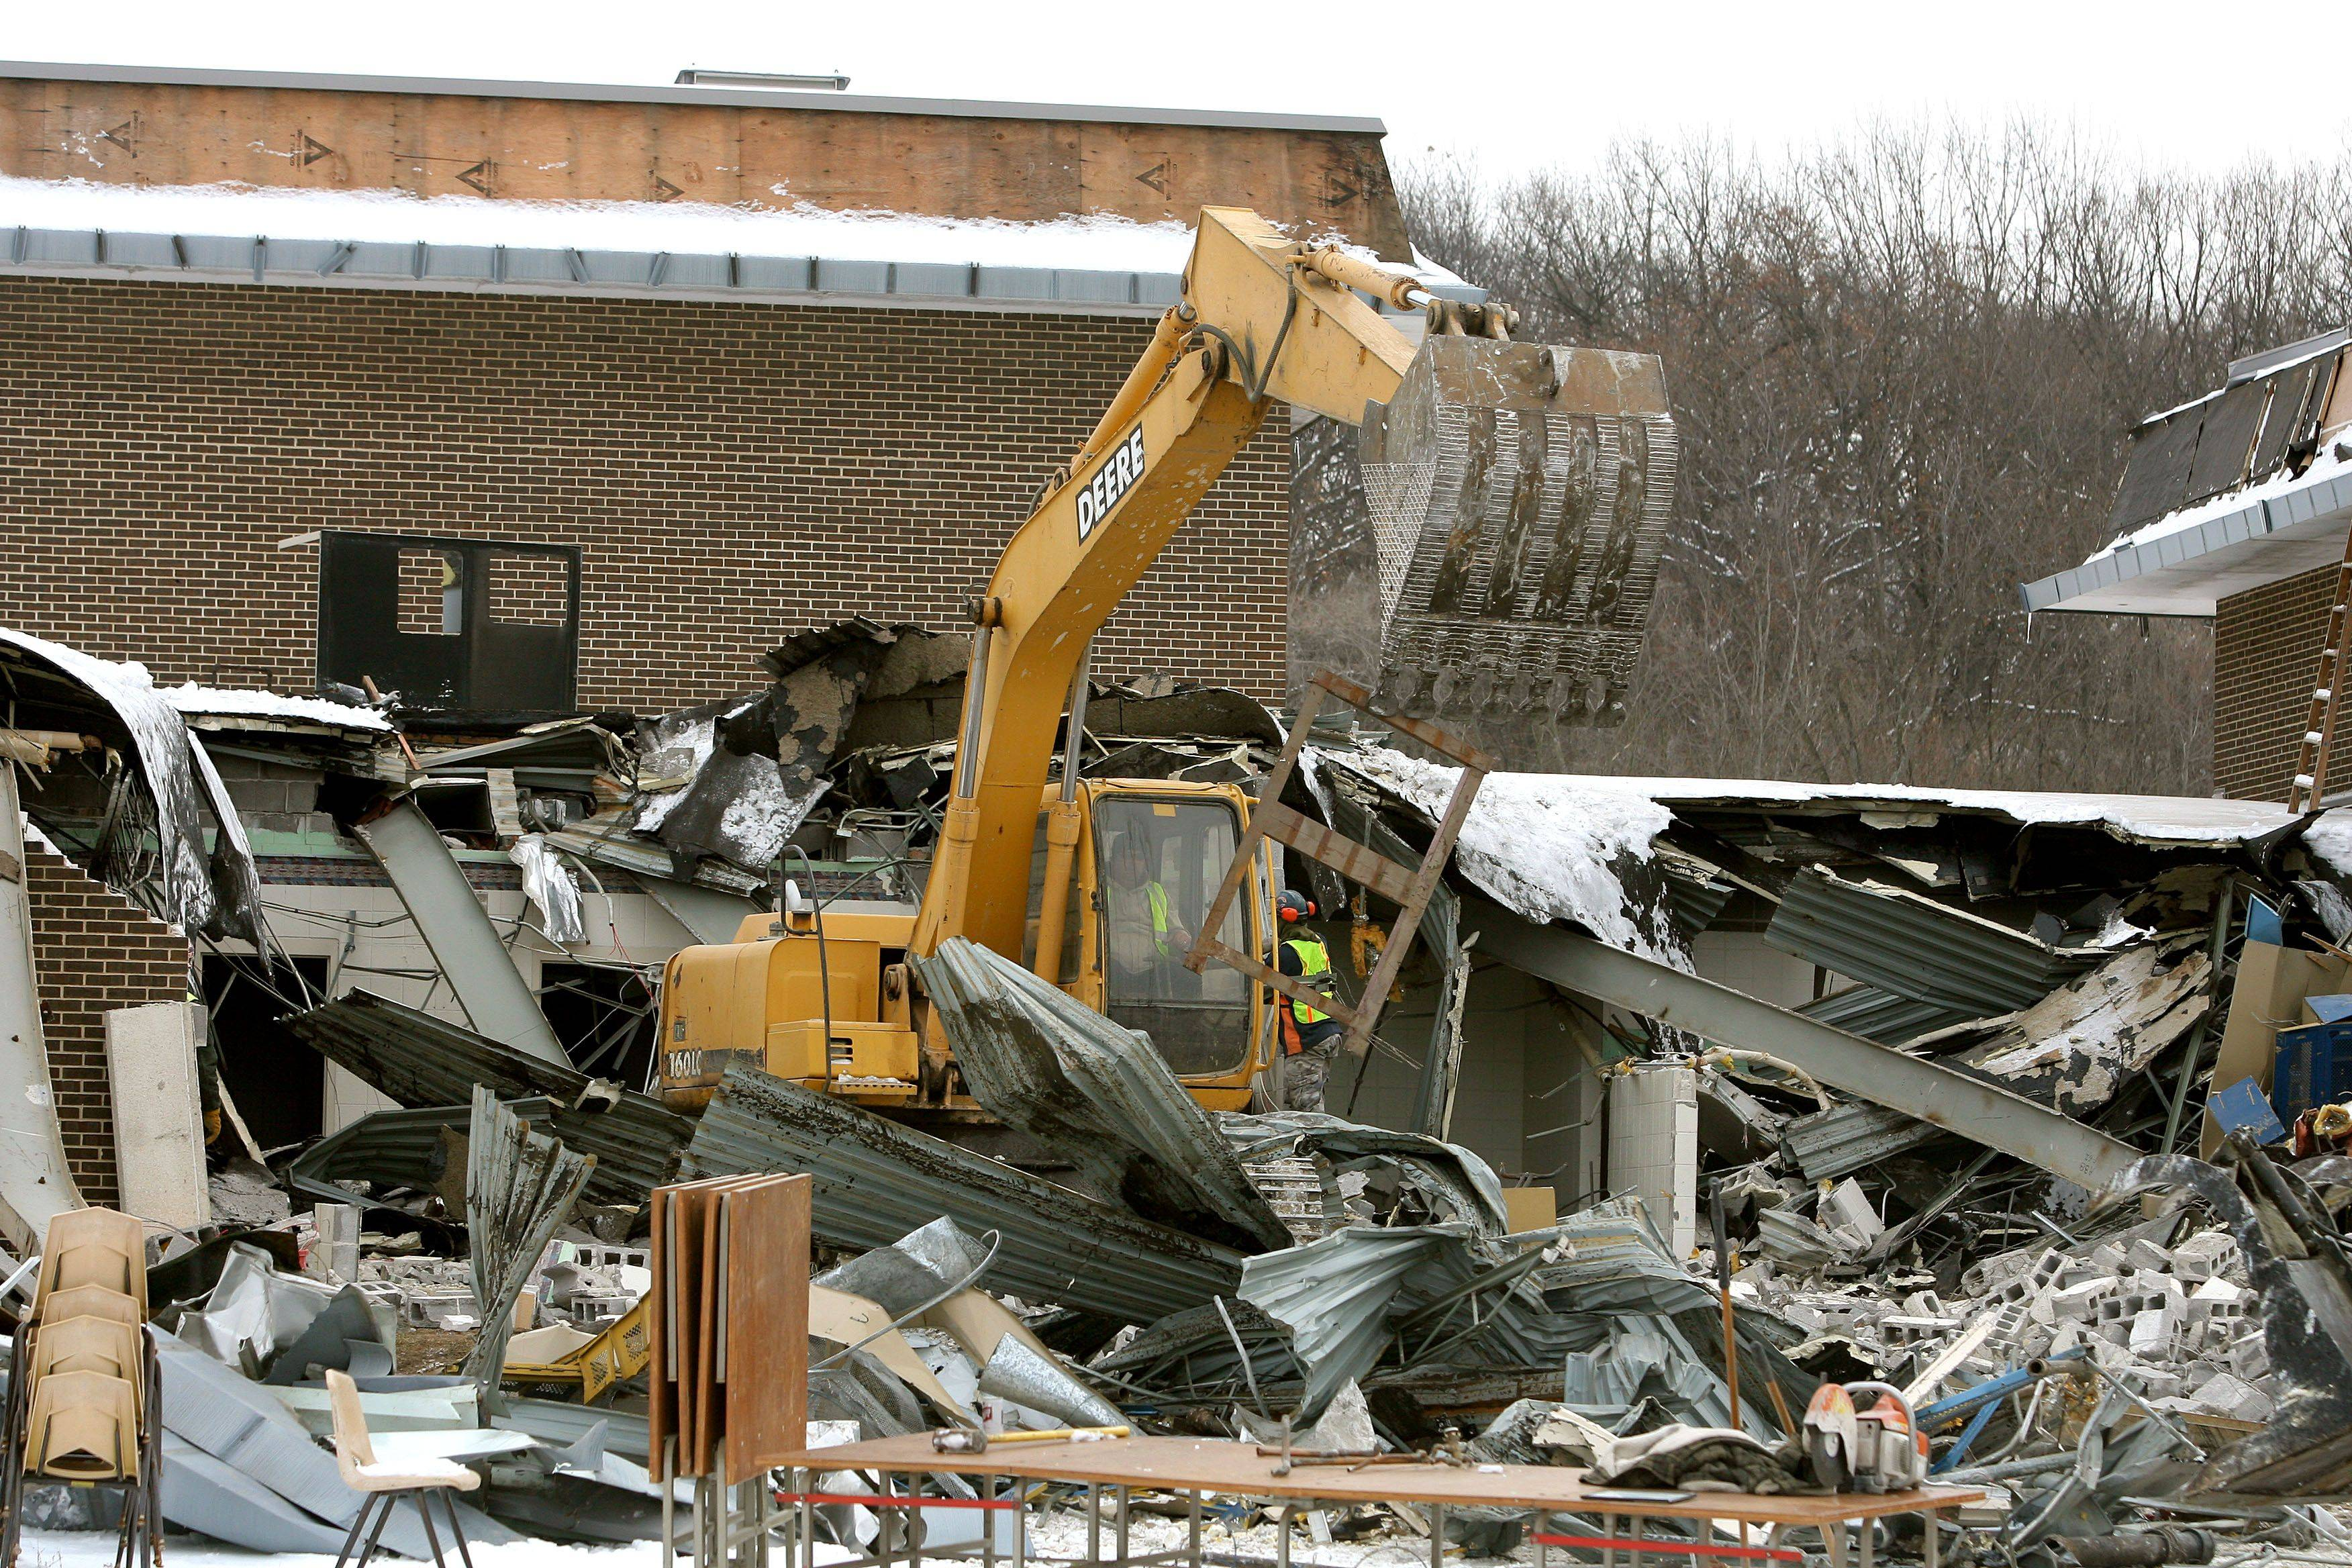 Demolition crews tear down the former Taveirne Middle School at routes 12 and 134 in Fox Lake Thursday morning.